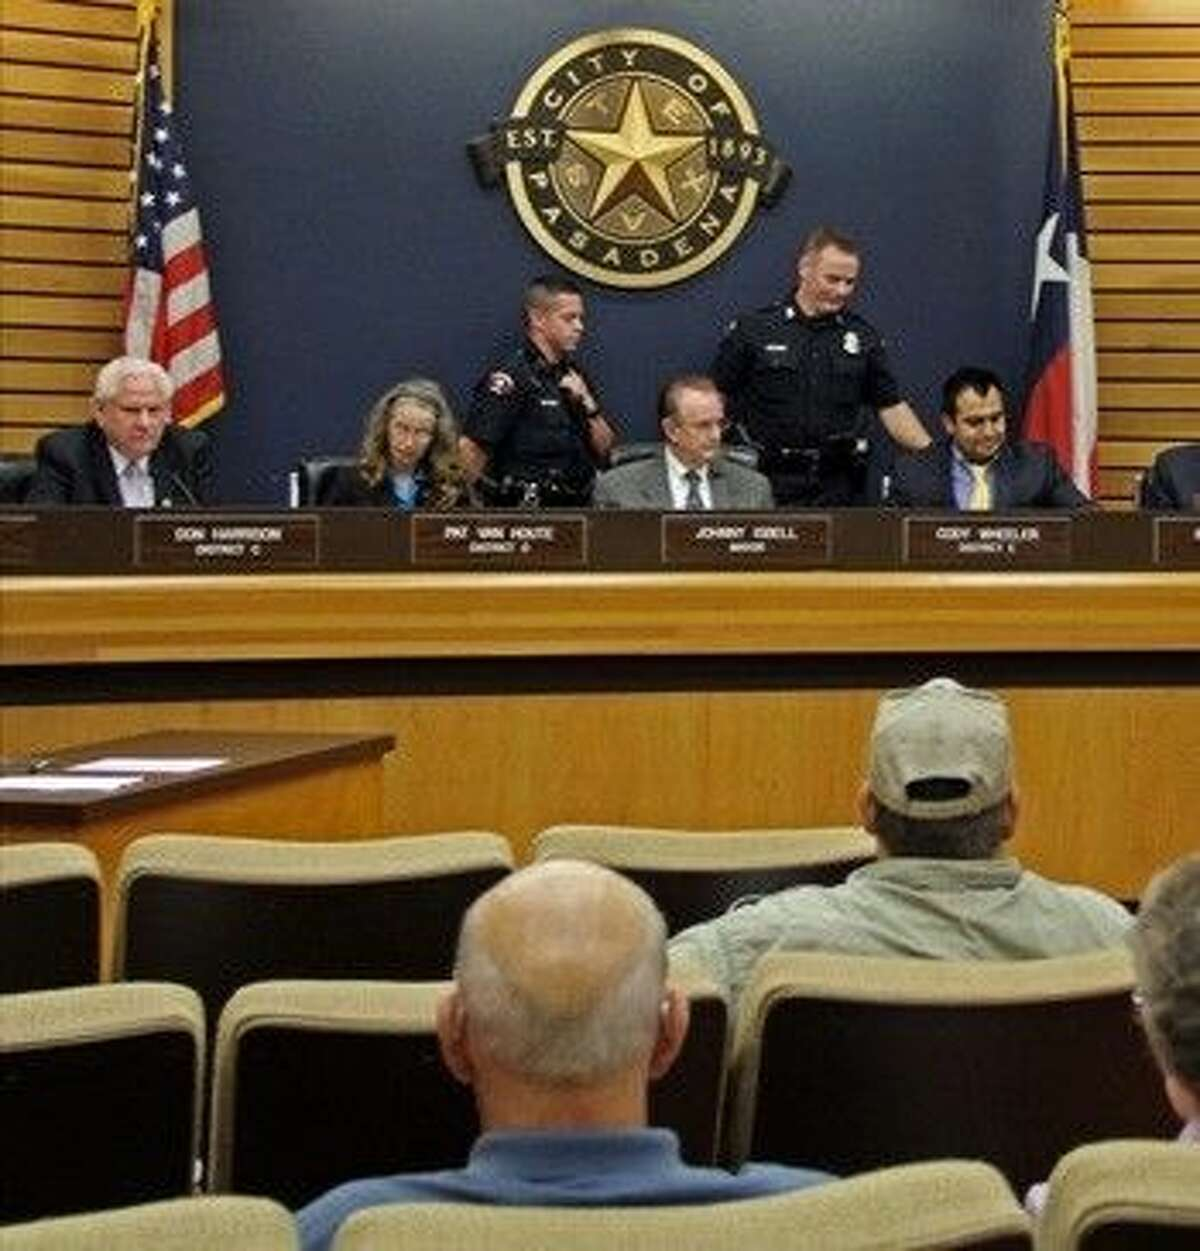 Citizen watch as Mayor Johnny Isbell instructs police officers to remove Councilmember Cody Wheeler from a council meeting for not following rules that limit comments to two minutes.